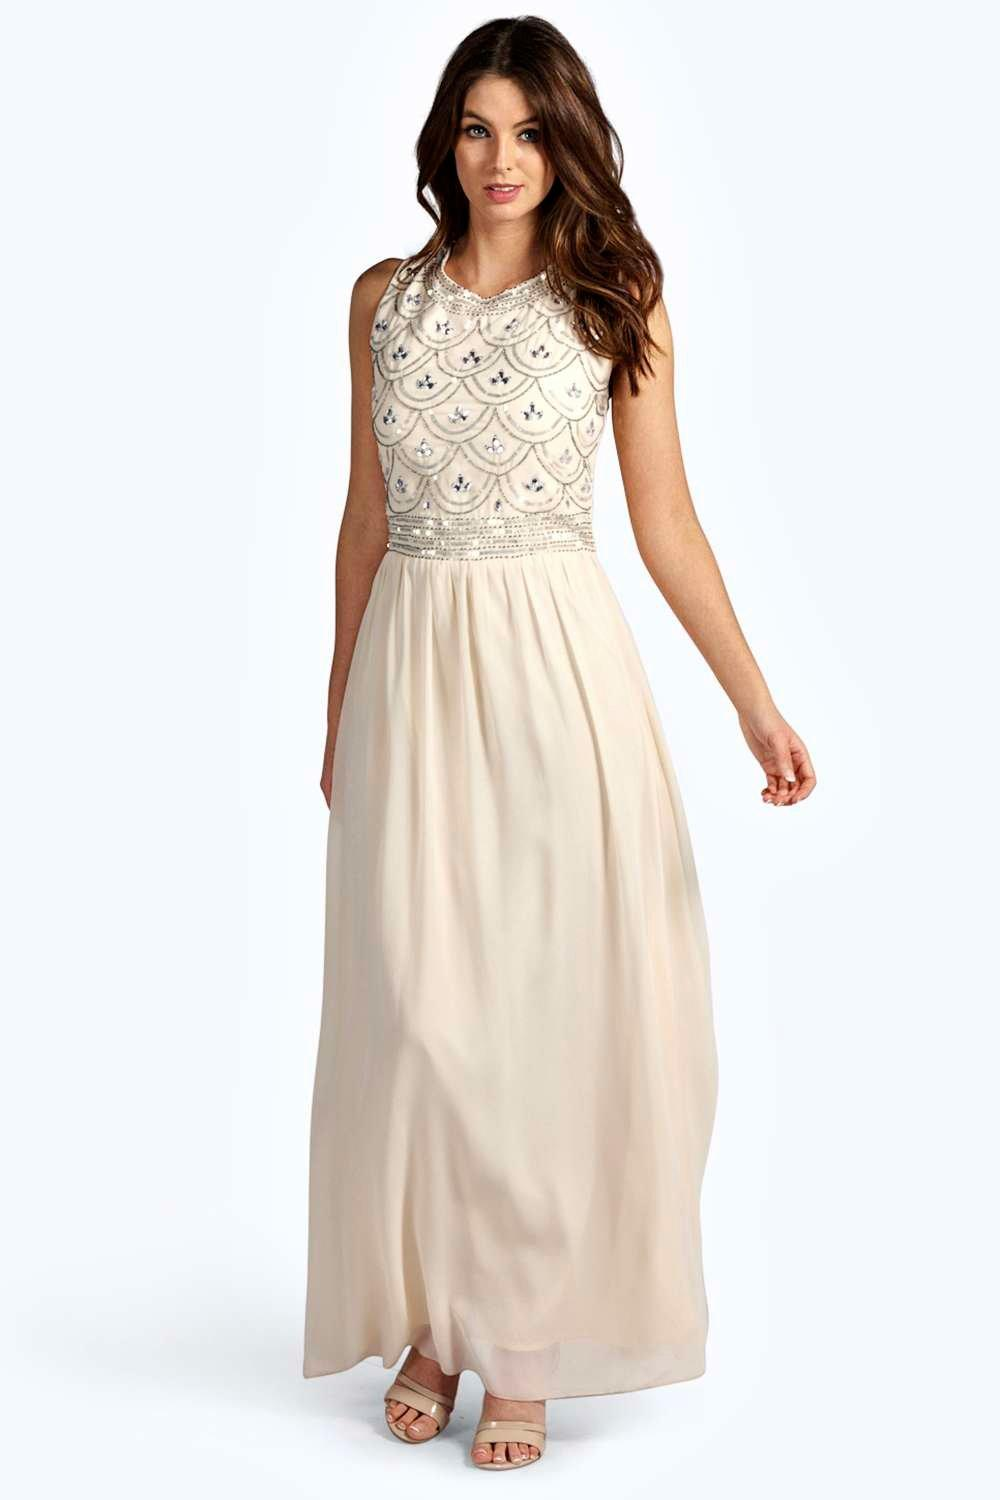 Boutique Crina Embellished Top Chiffon Maxi Dress